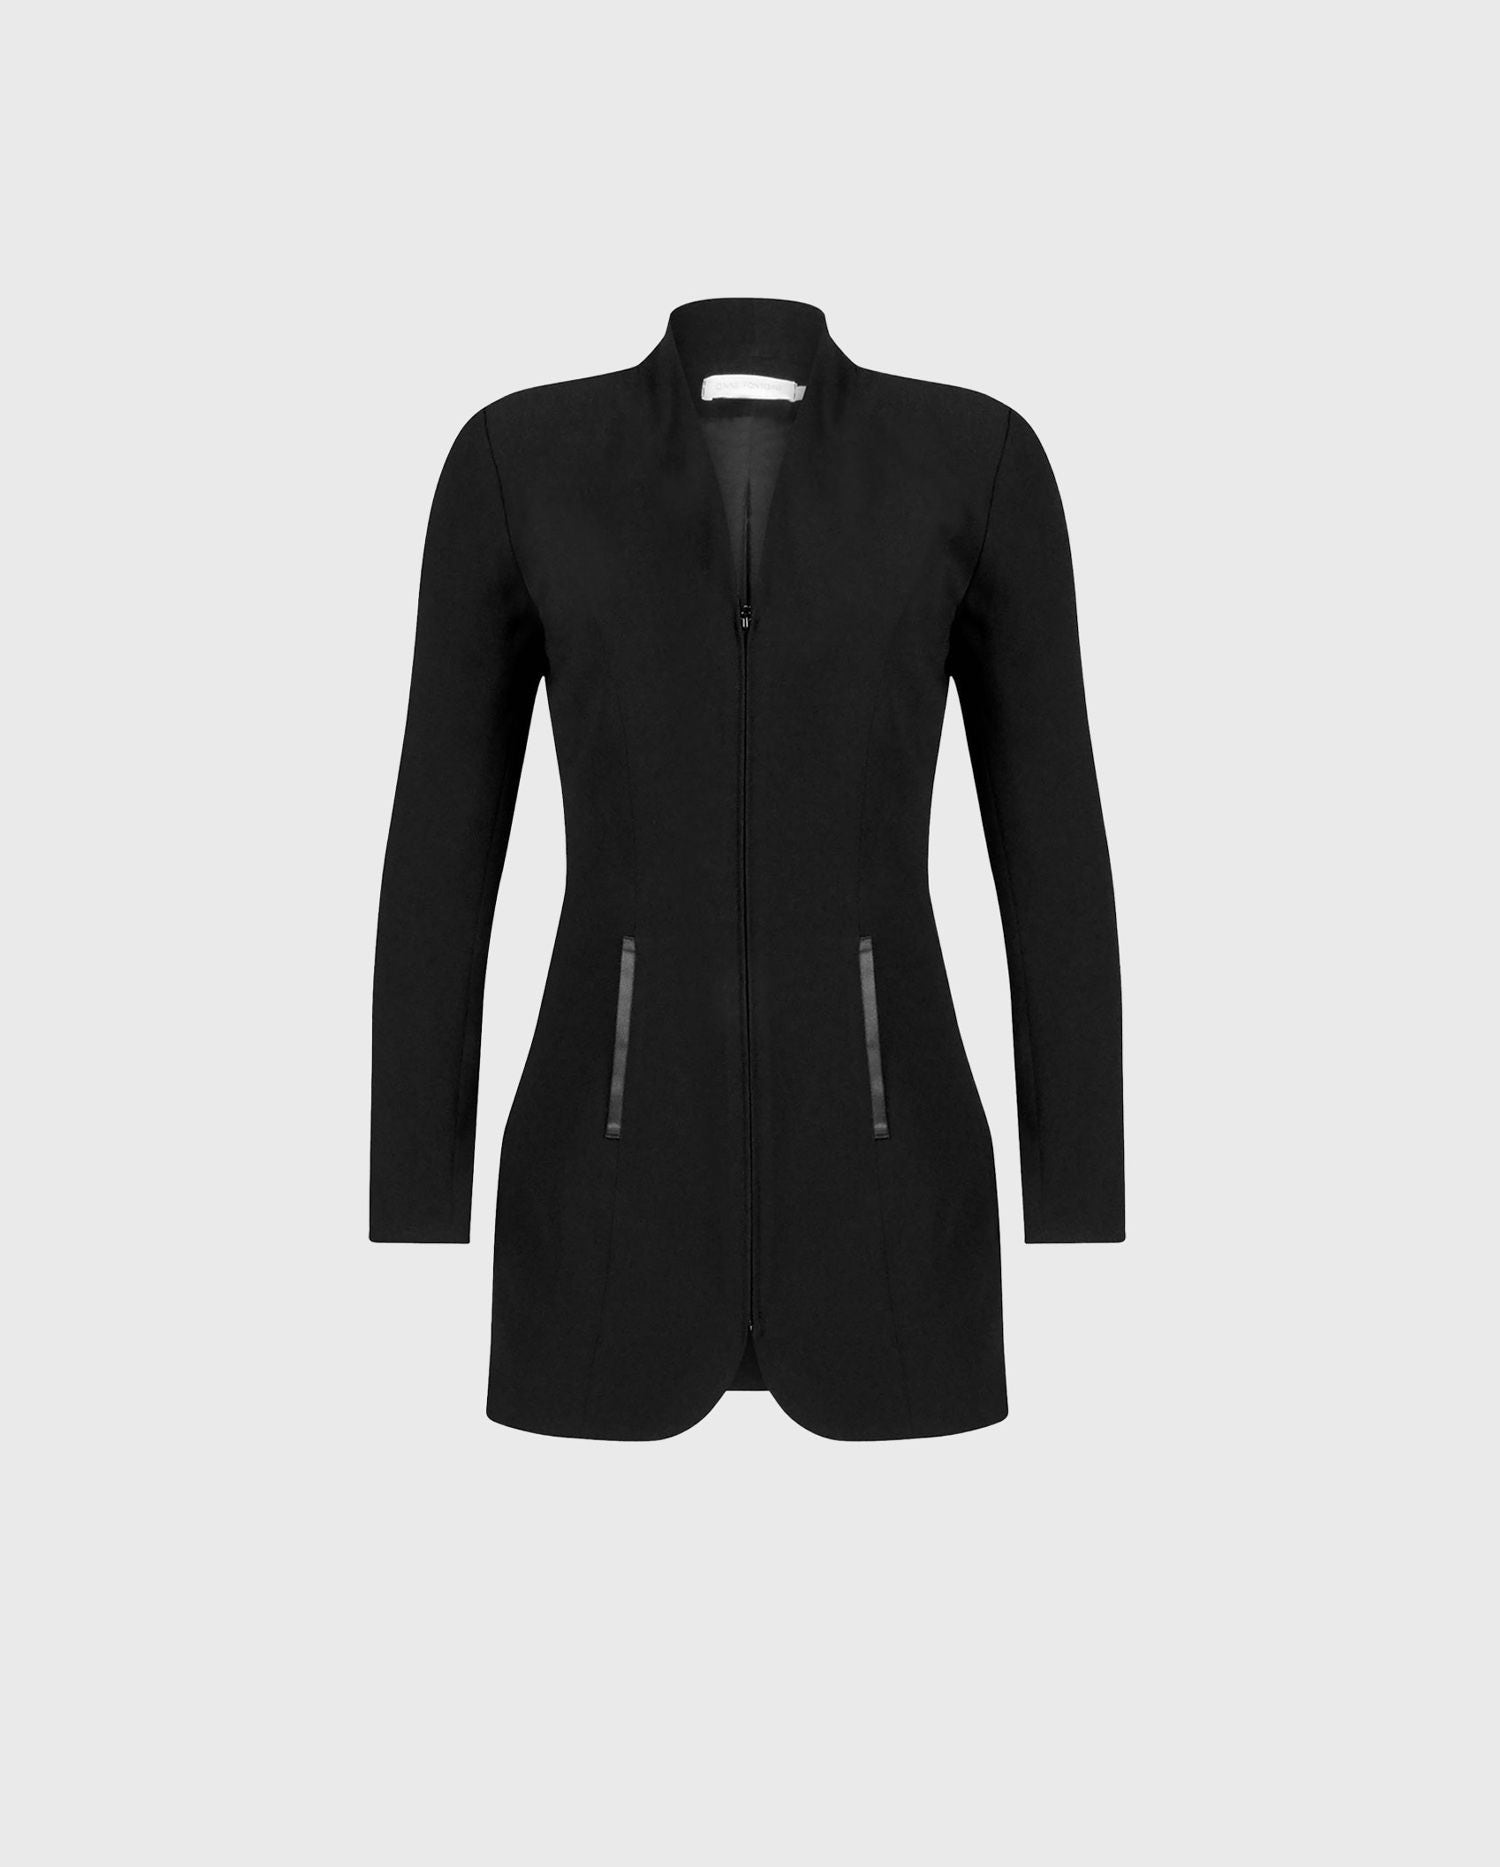 The VAZAR black longline jacket is the perfect jacket to add to your Fall dressing style.